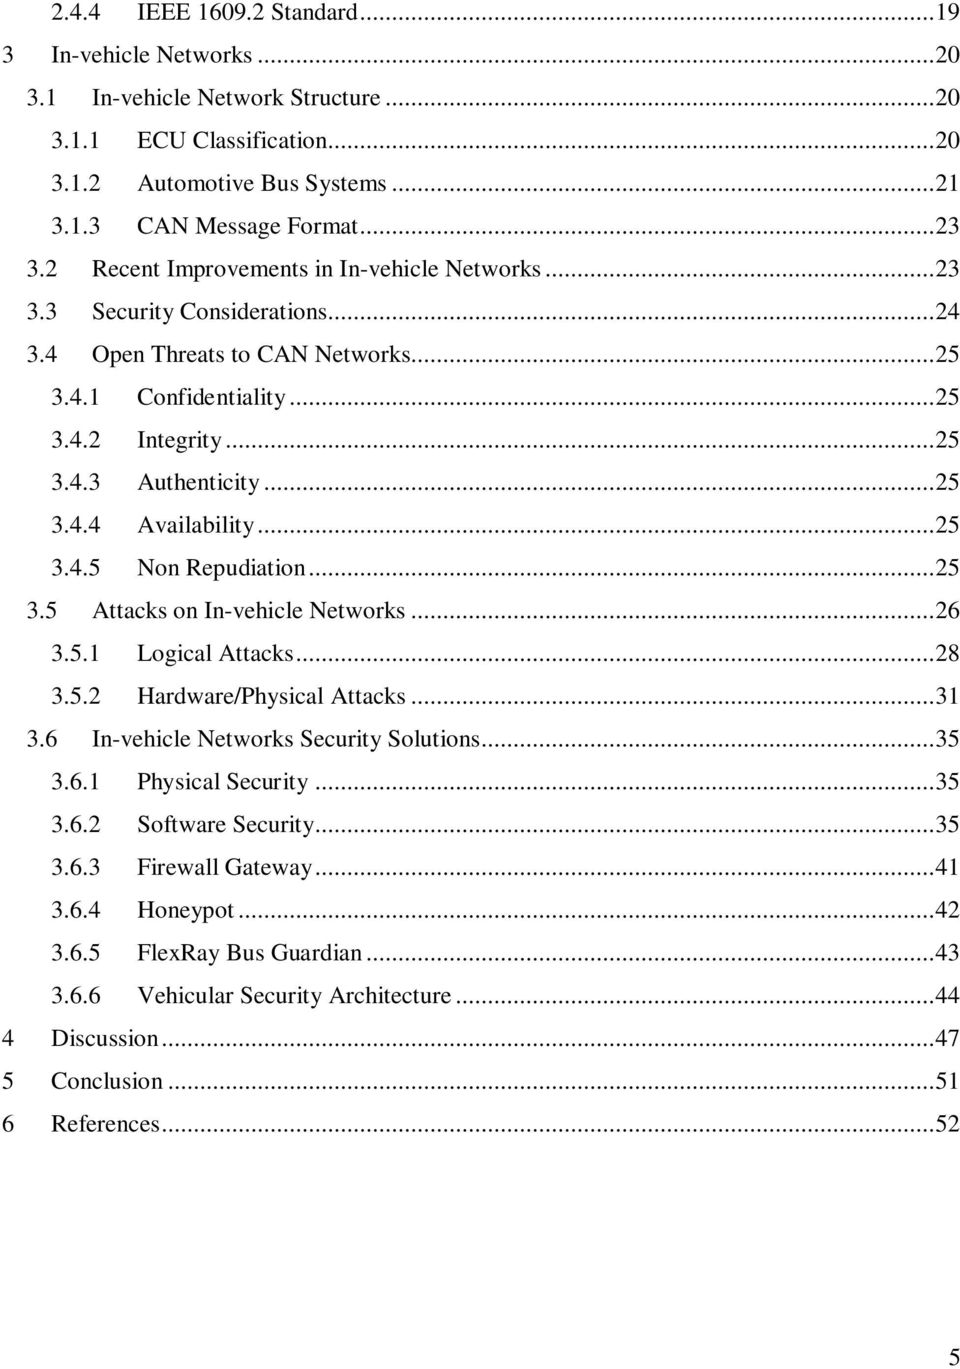 .. 25 3.4.5 Non Repudiation... 25 3.5 Attacks on In-vehicle Networks... 26 3.5.1 Logical Attacks... 28 3.5.2 Hardware/Physical Attacks... 31 3.6 In-vehicle Networks Security Solutions... 35 3.6.1 Physical Security.